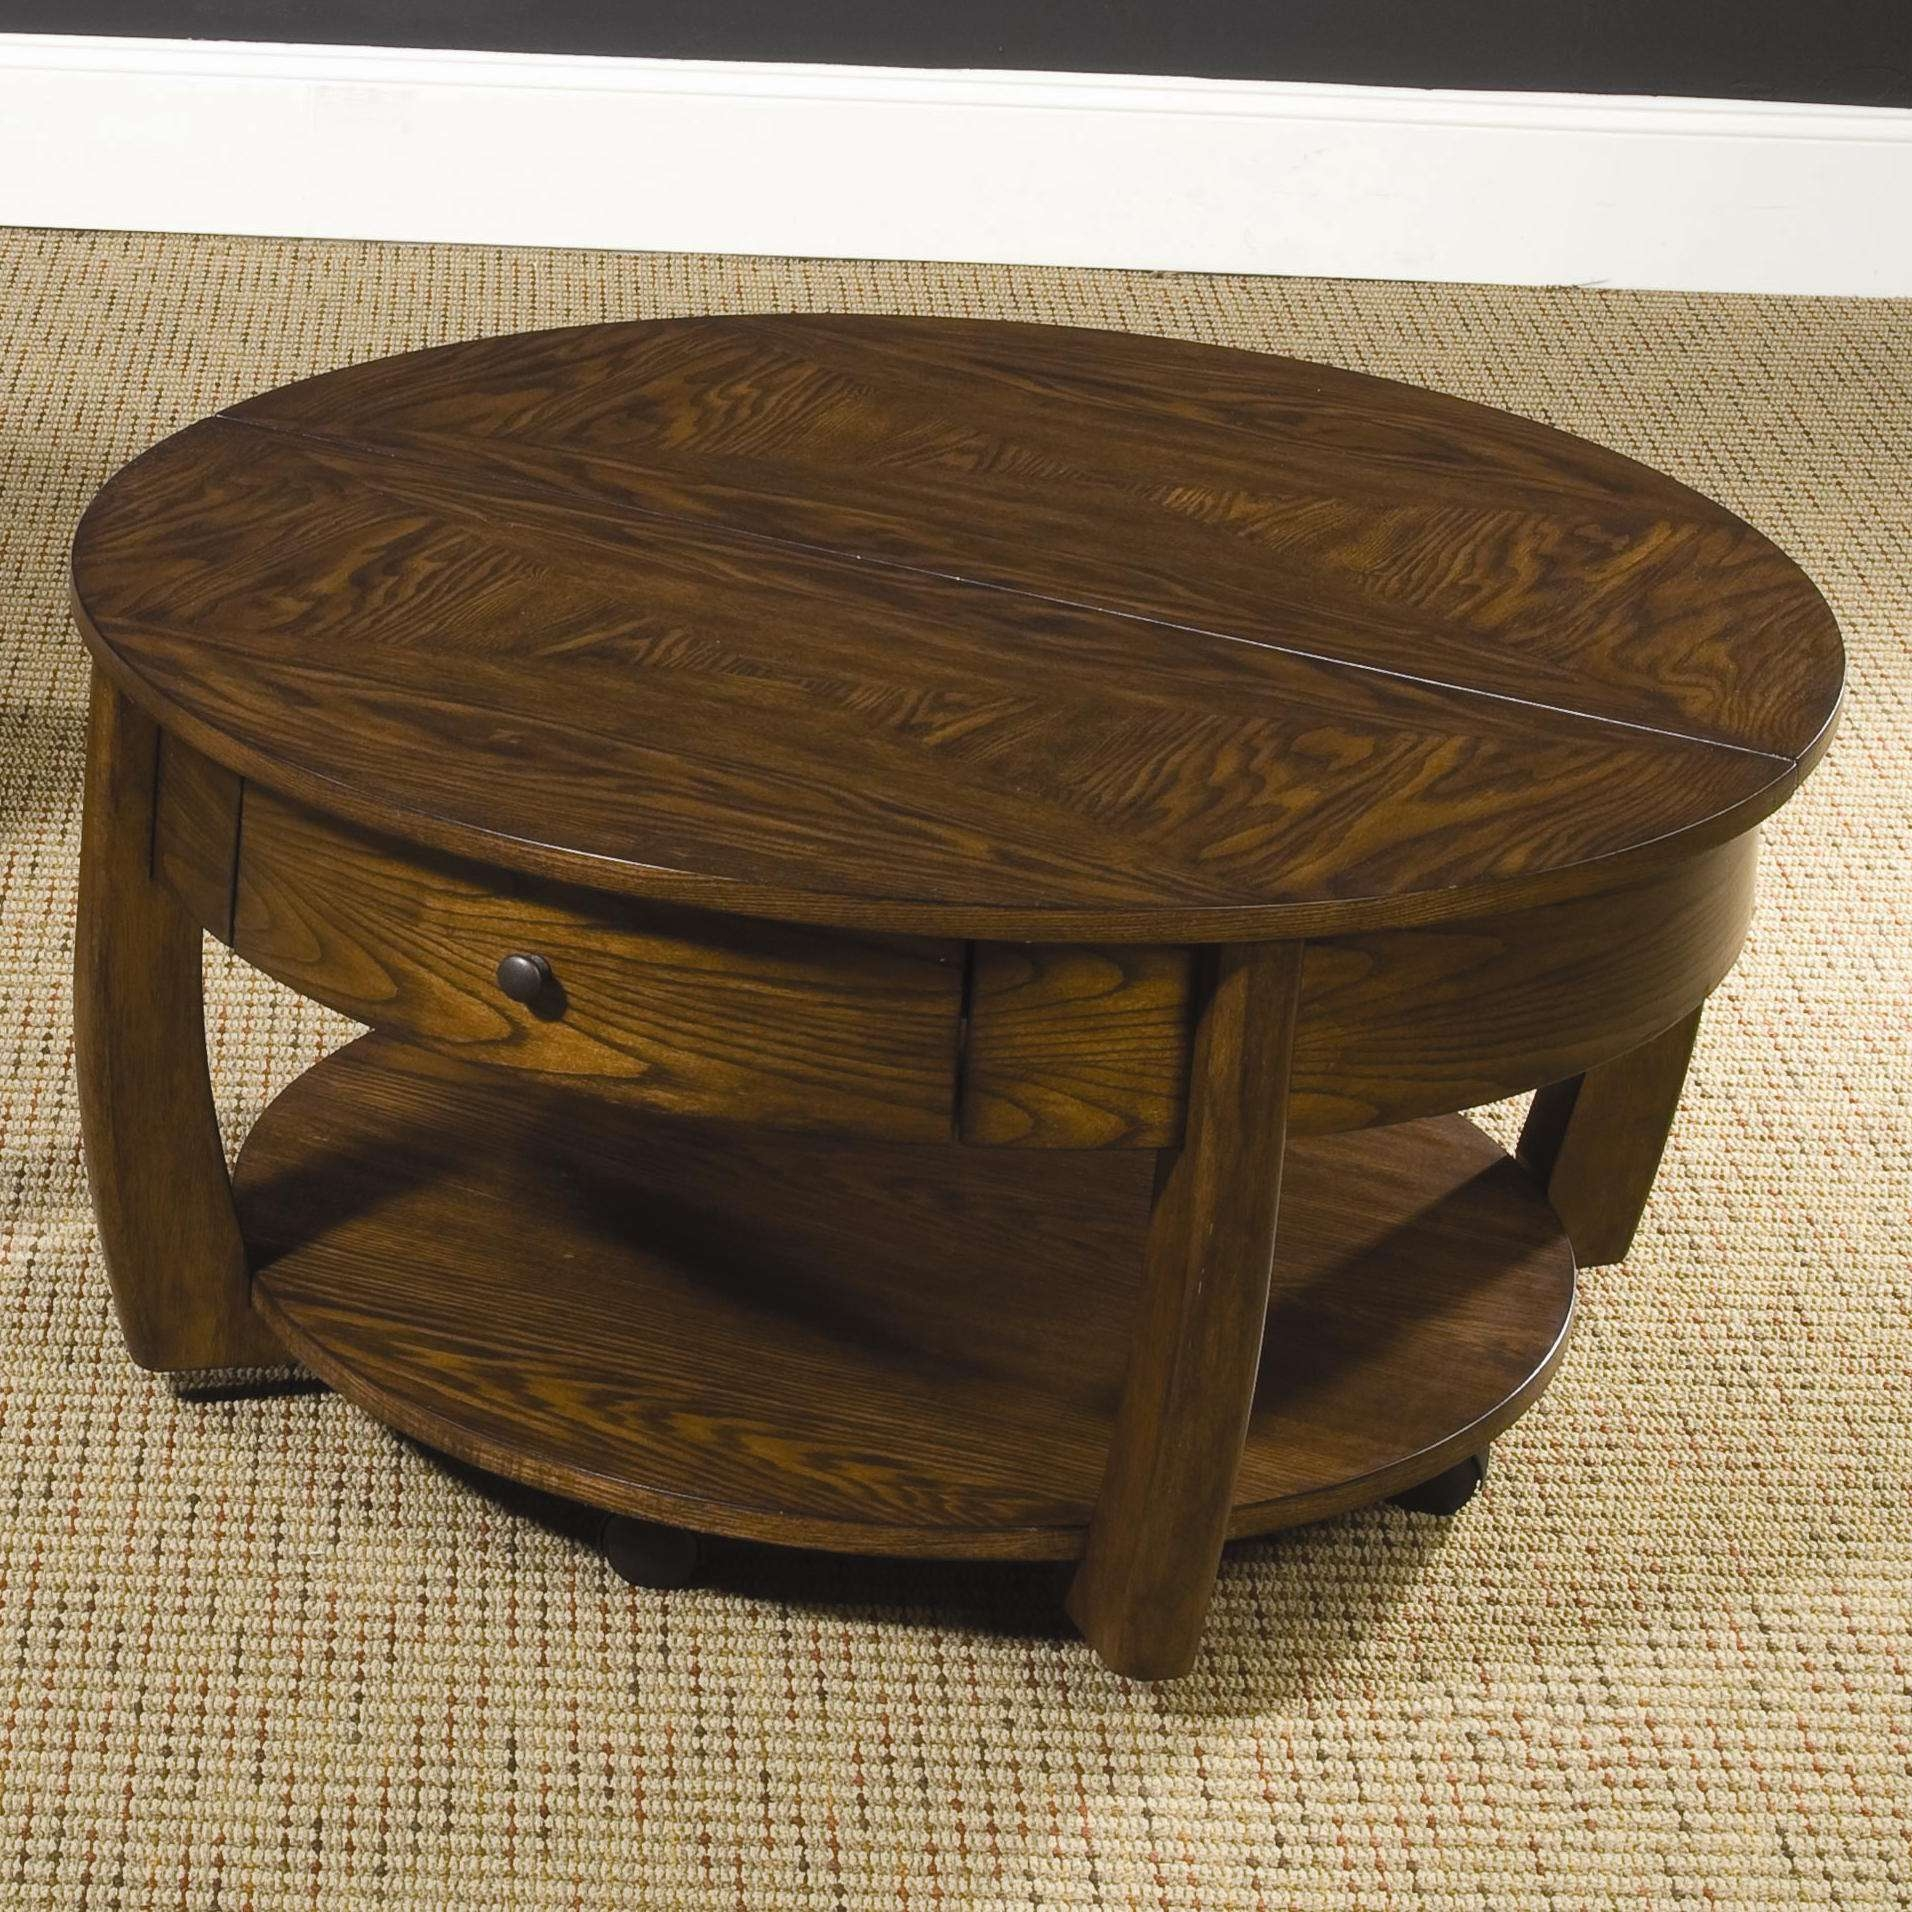 Well Known Round Coffee Tables With Drawer Pertaining To Round Lift Top Cocktail Table With Lower Shelf And Drawer (View 20 of 20)